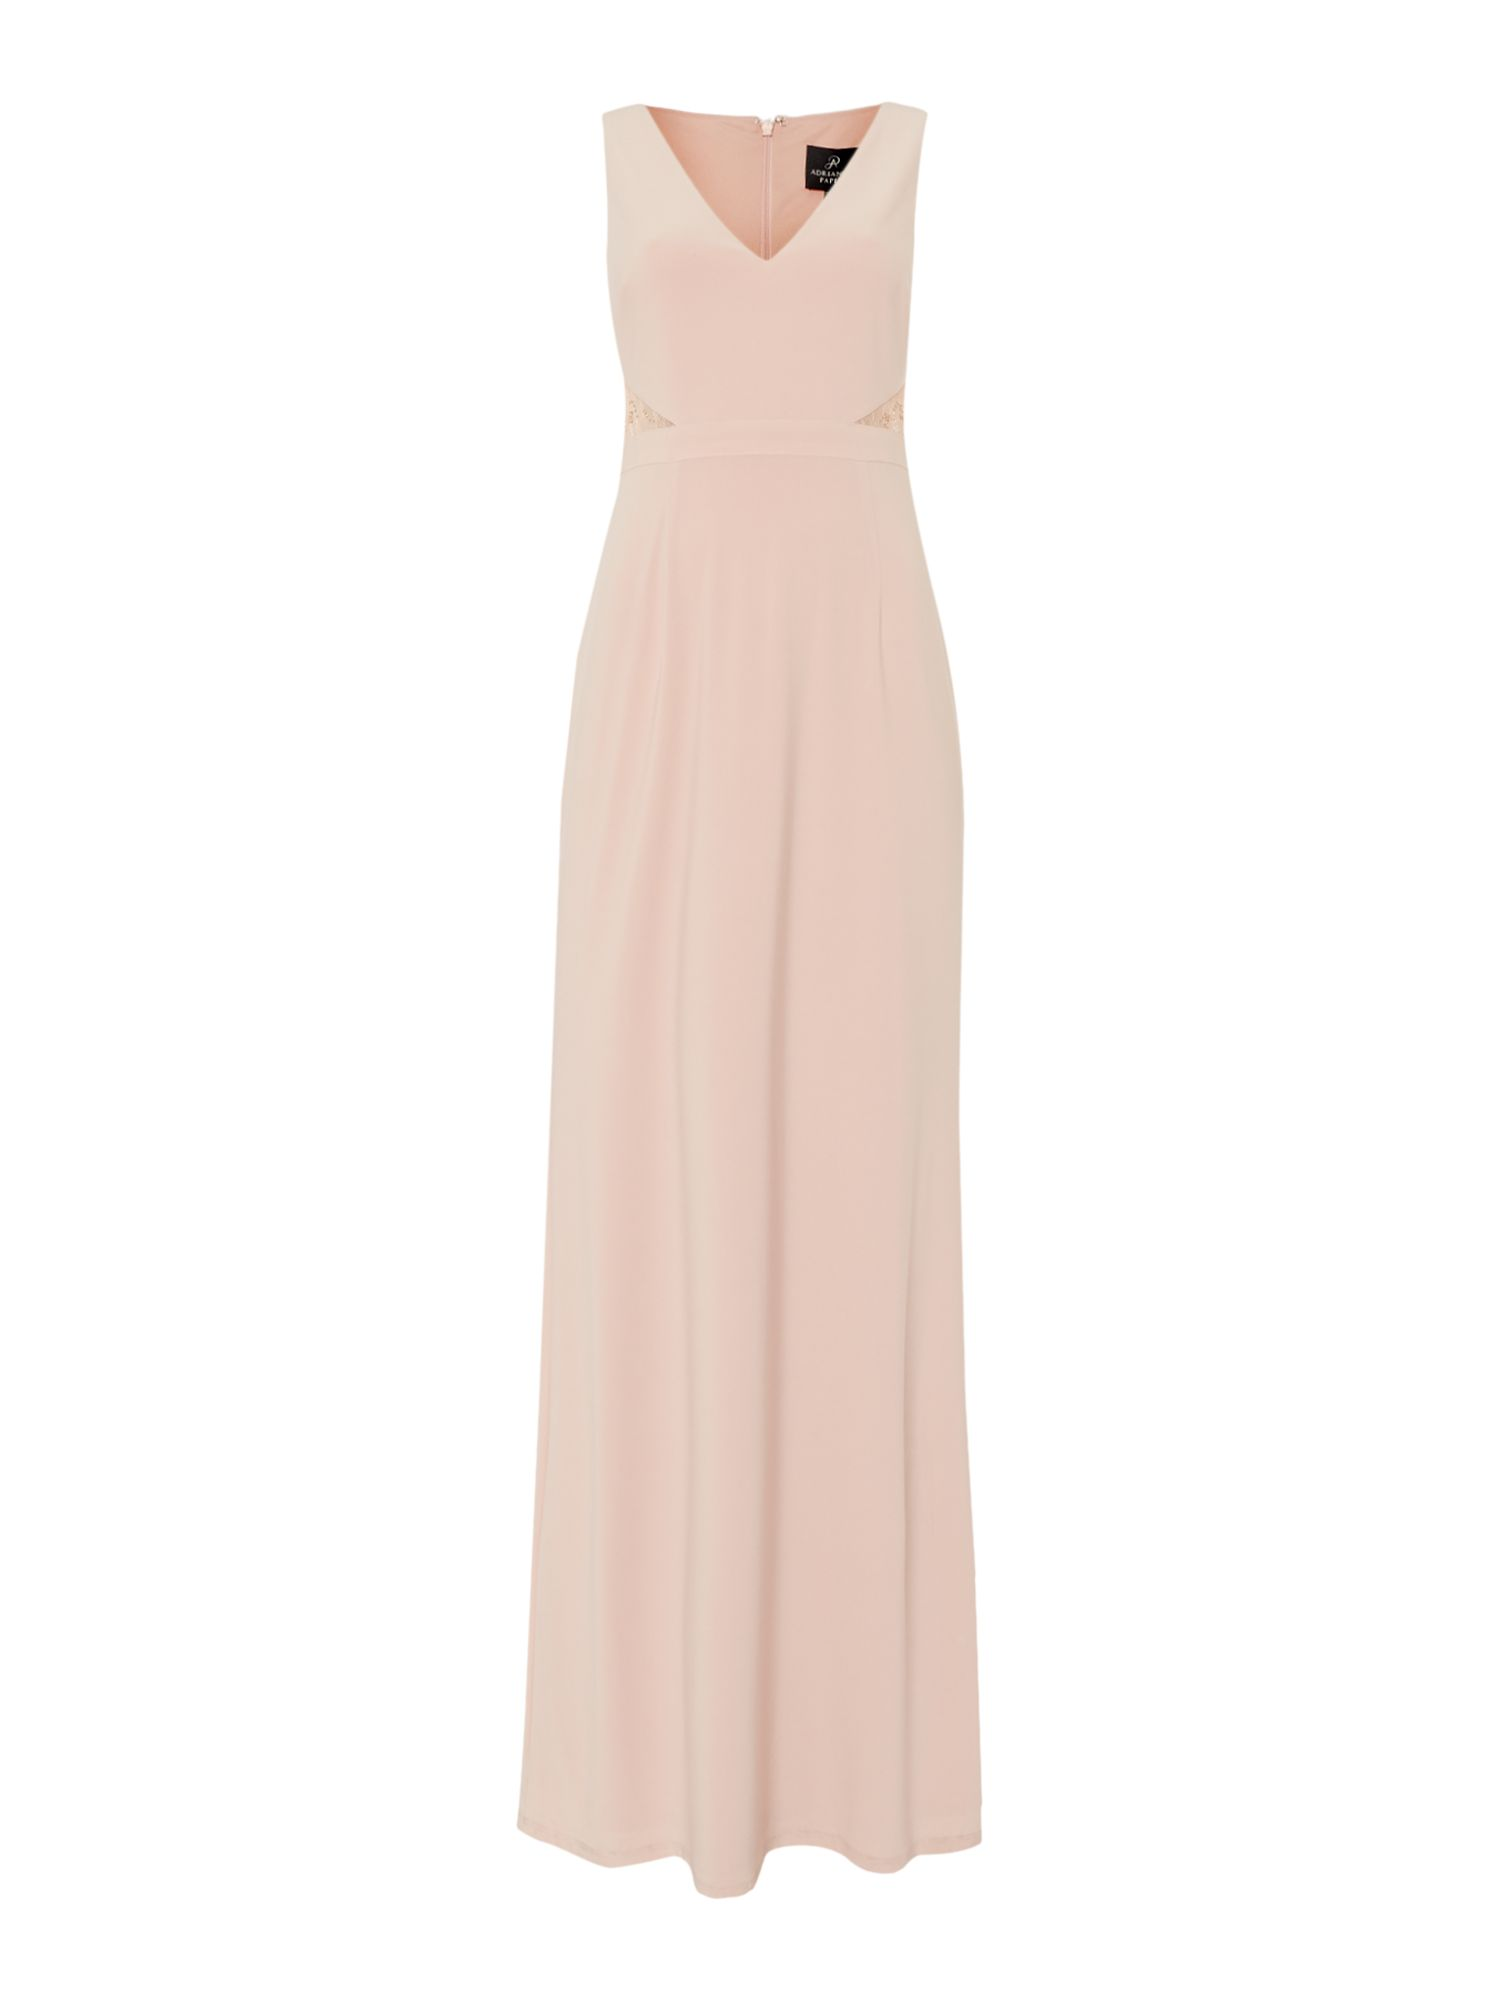 Adrianna Papell Sleeveless gown with lace inserts, Pink